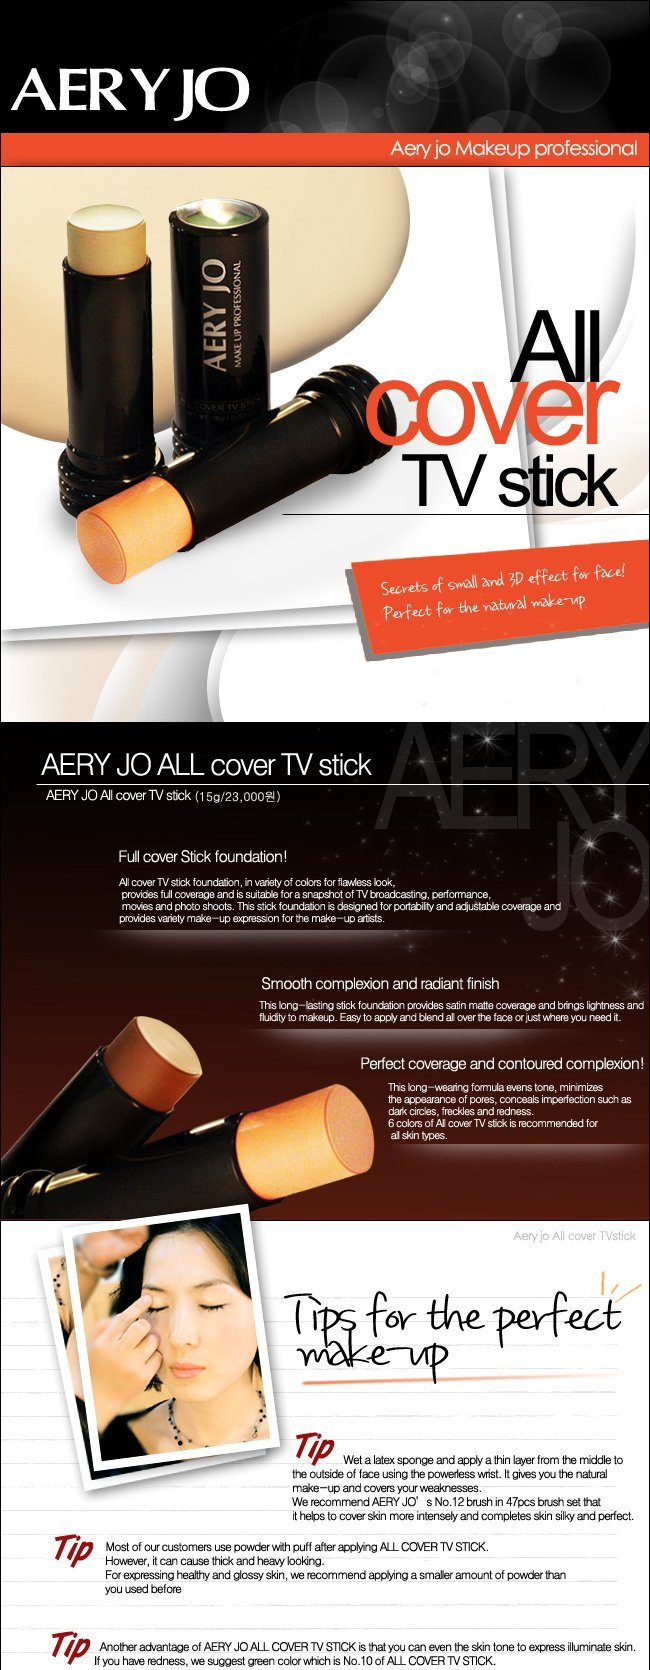 All Cover TV Stick foundation aery jo